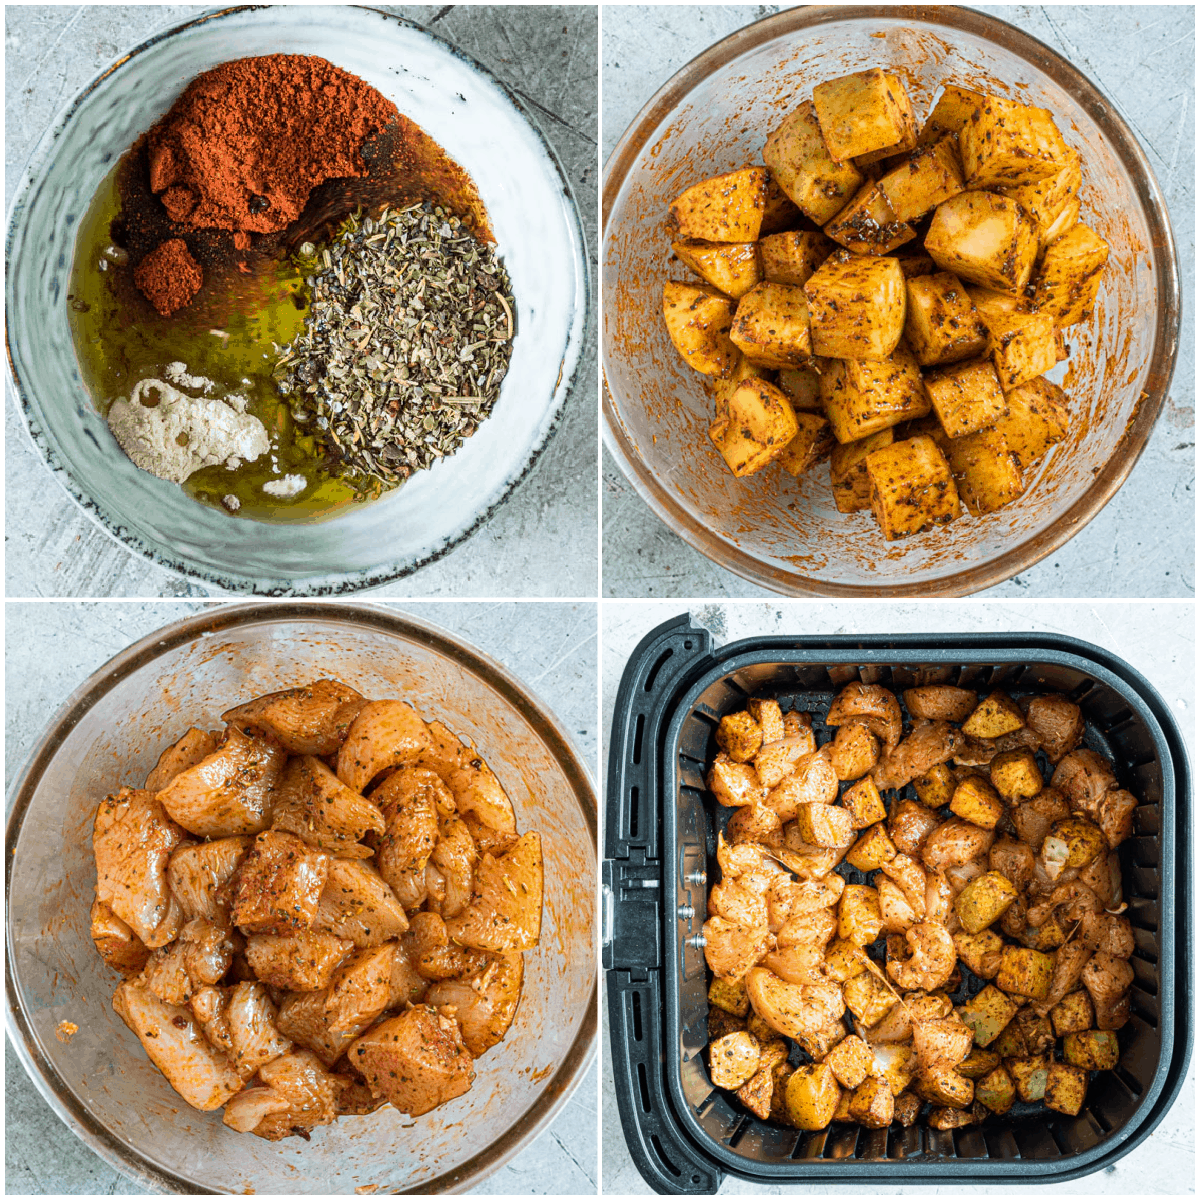 image collage showing the steps for making air fryer chicken and potatoes